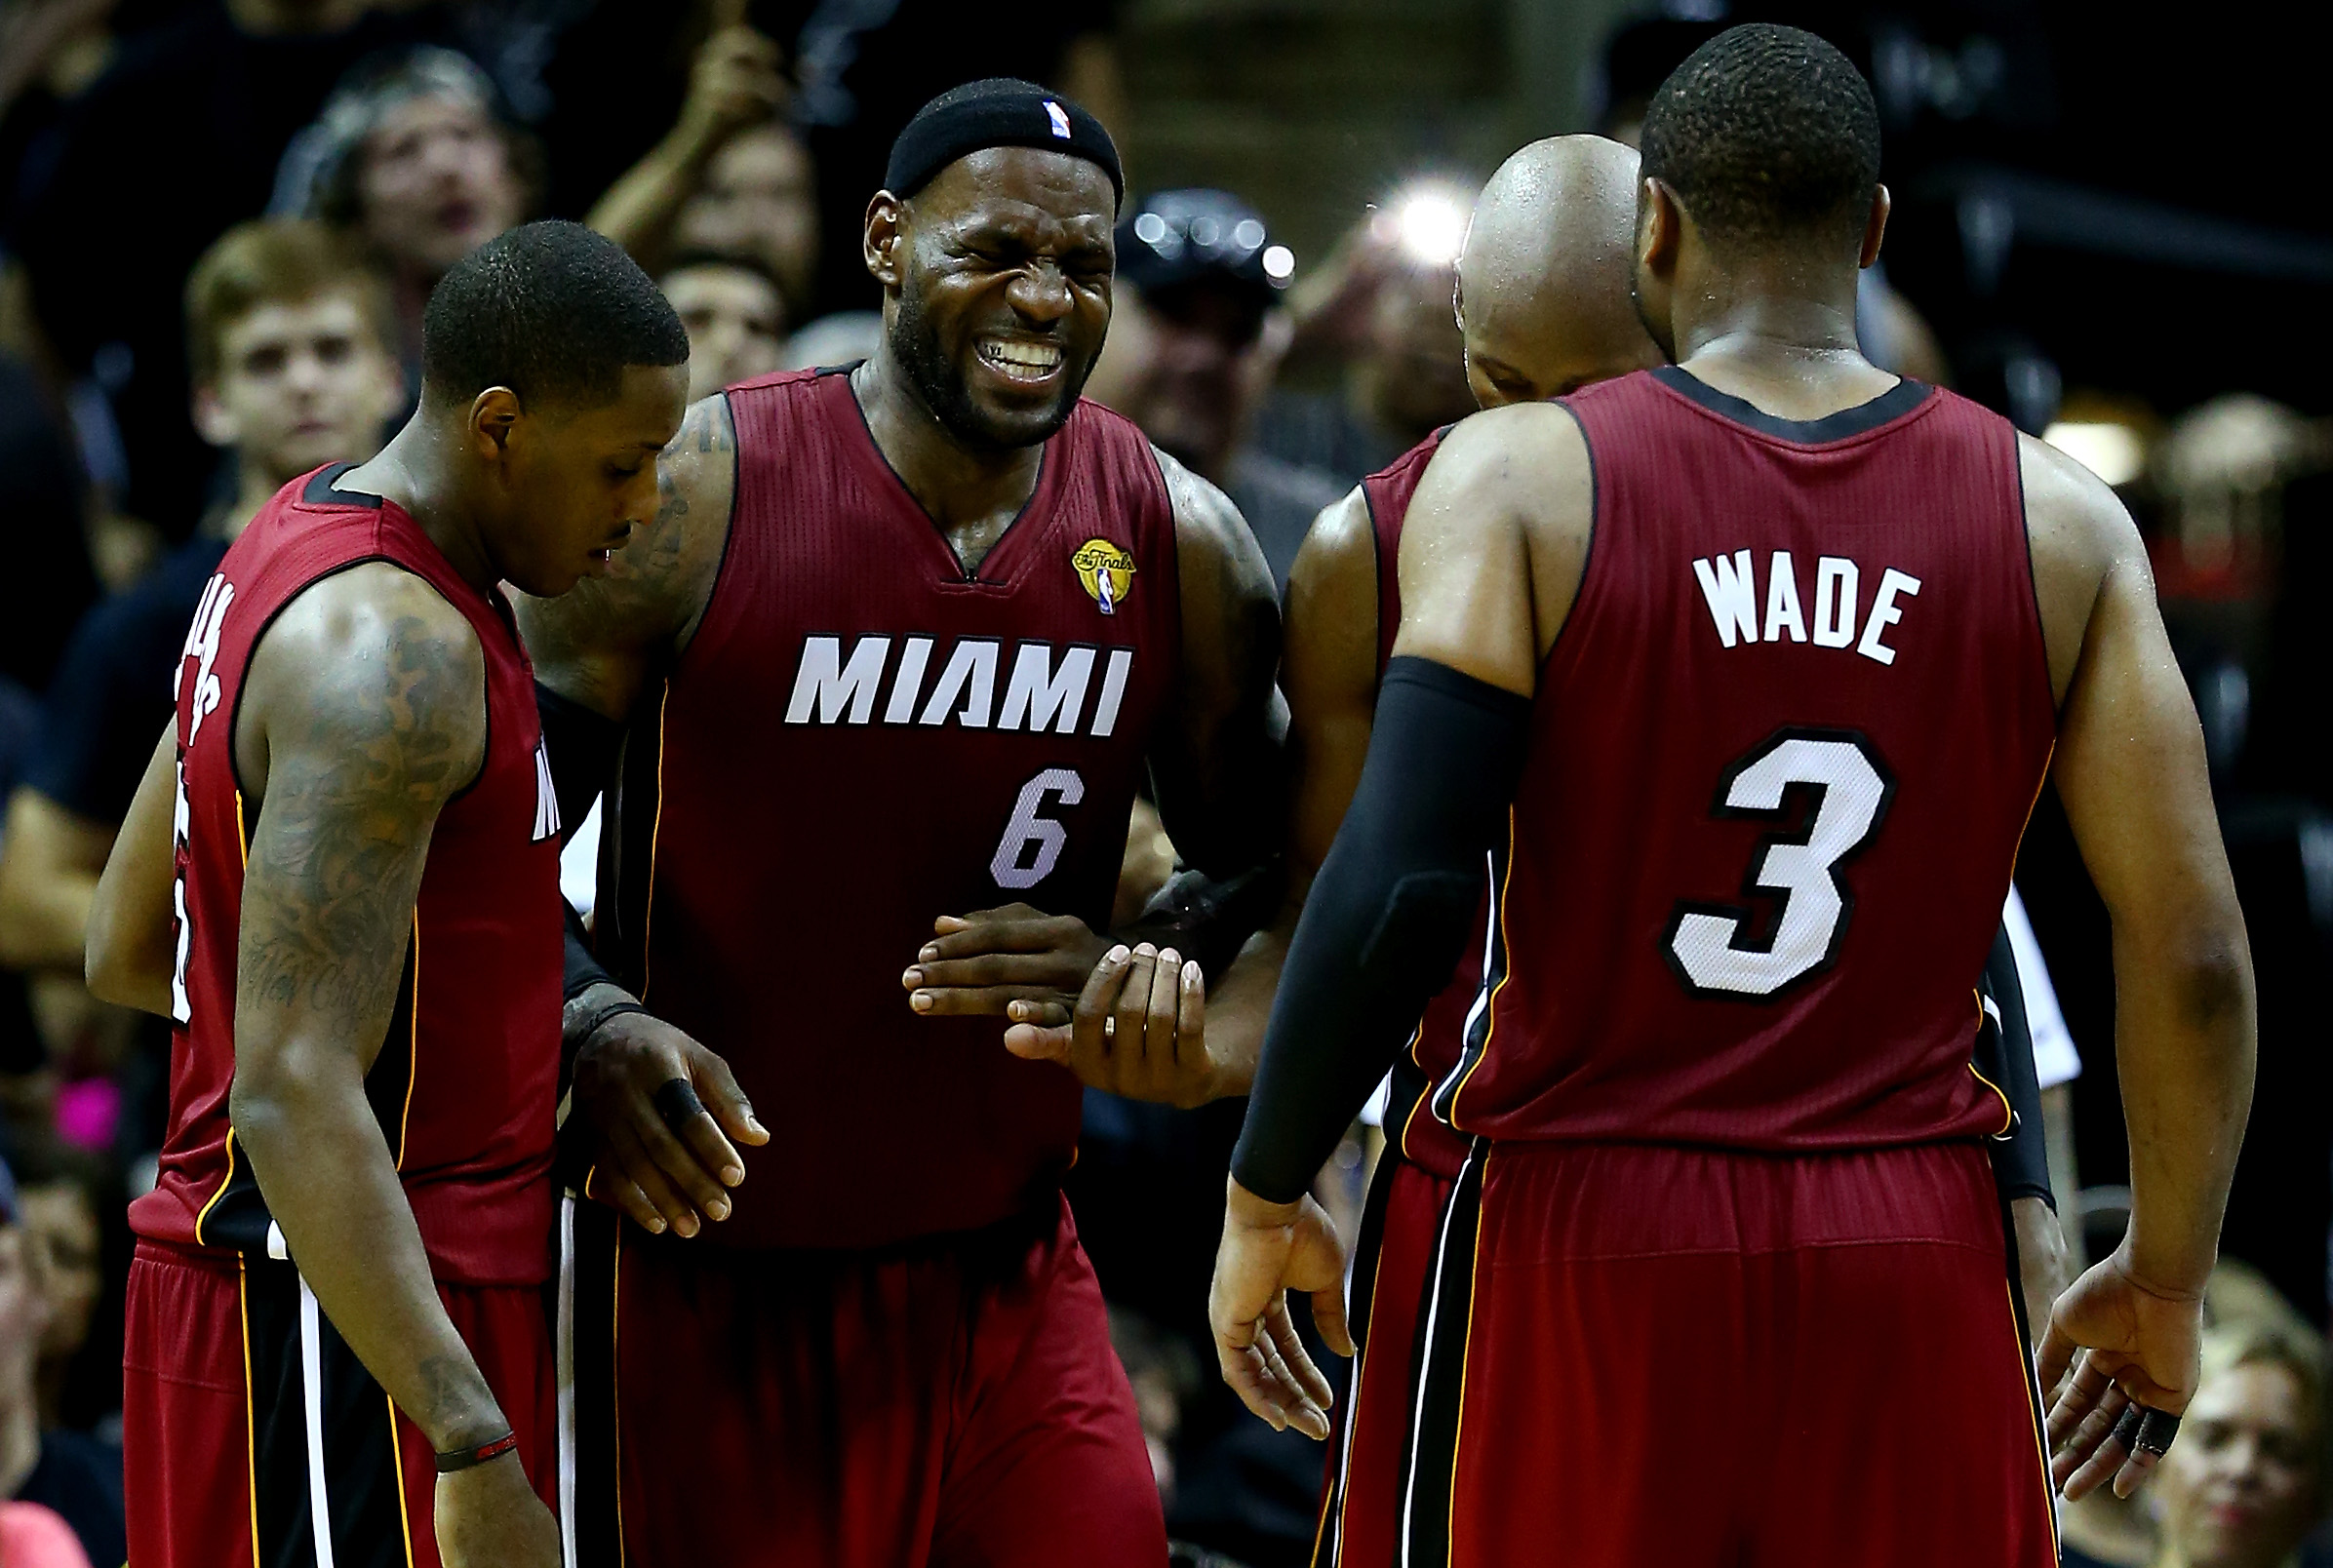 LeBron James reacts after cramping up during Game One of the 2014 NBA Finals on June 5, 2014 in San Antonio, Texas.